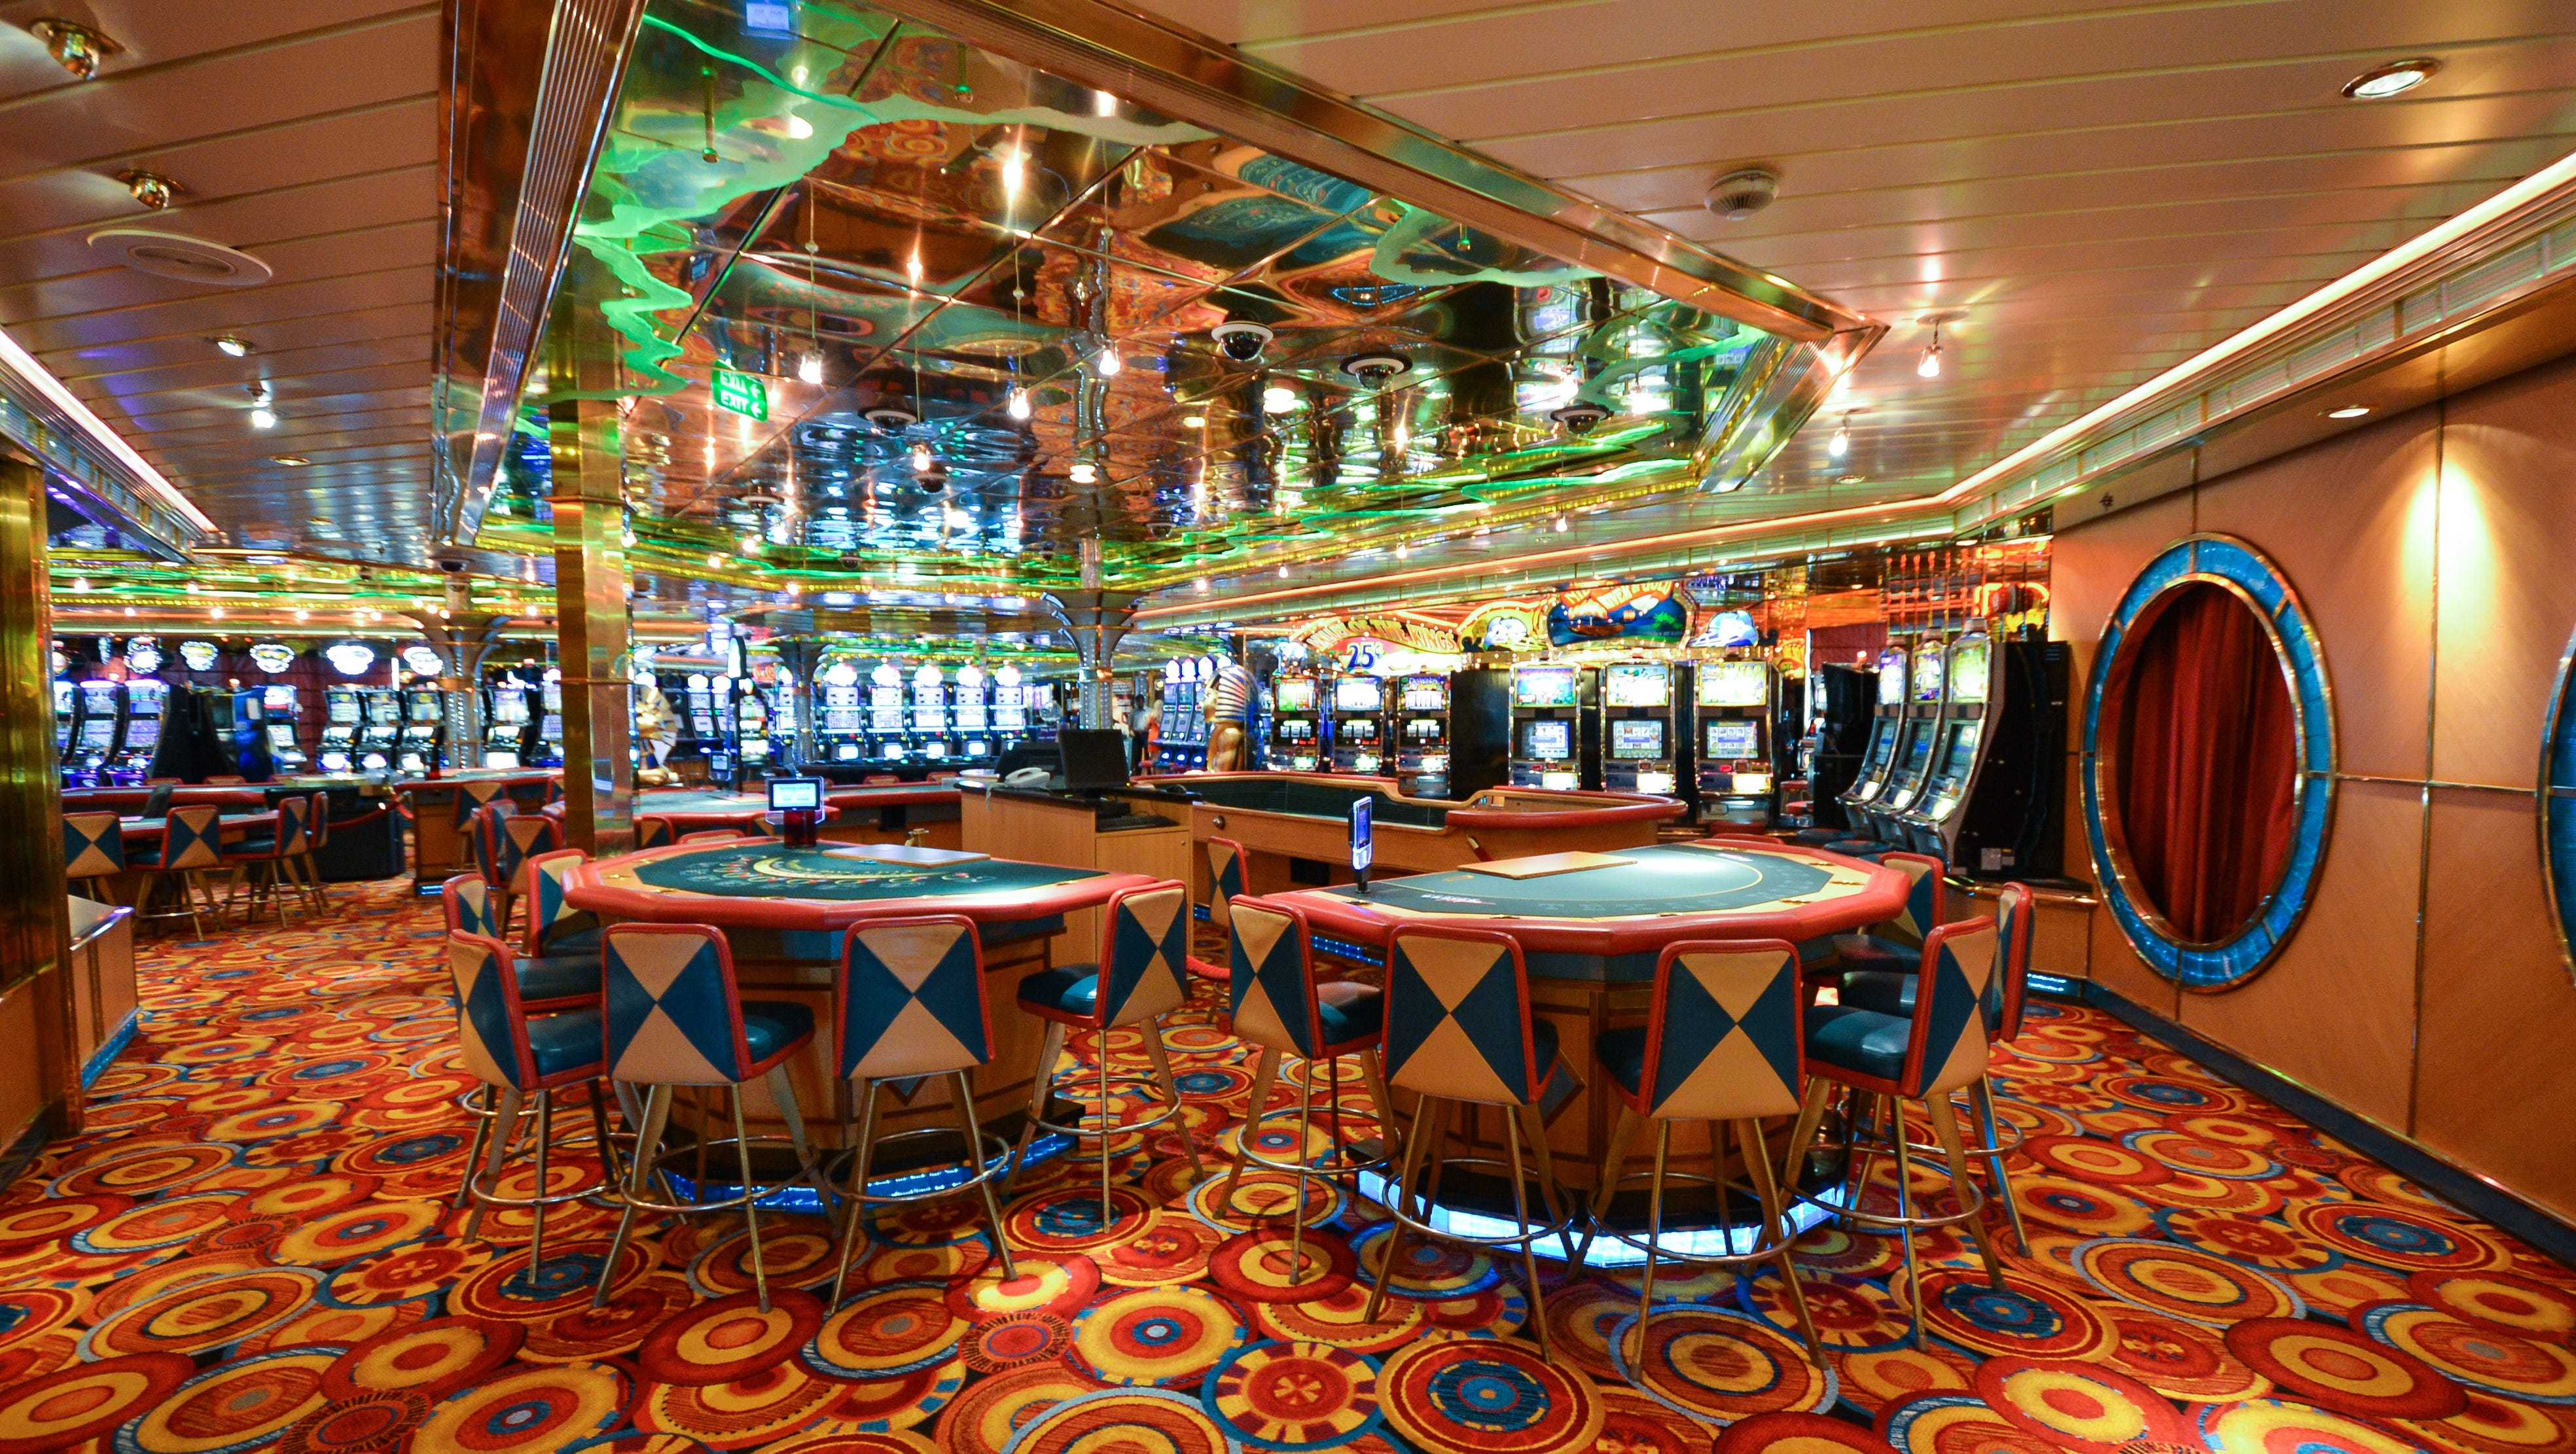 Located on Deck 5, Casino Royale spans a large area between the Palladium Theater and the Centrum.